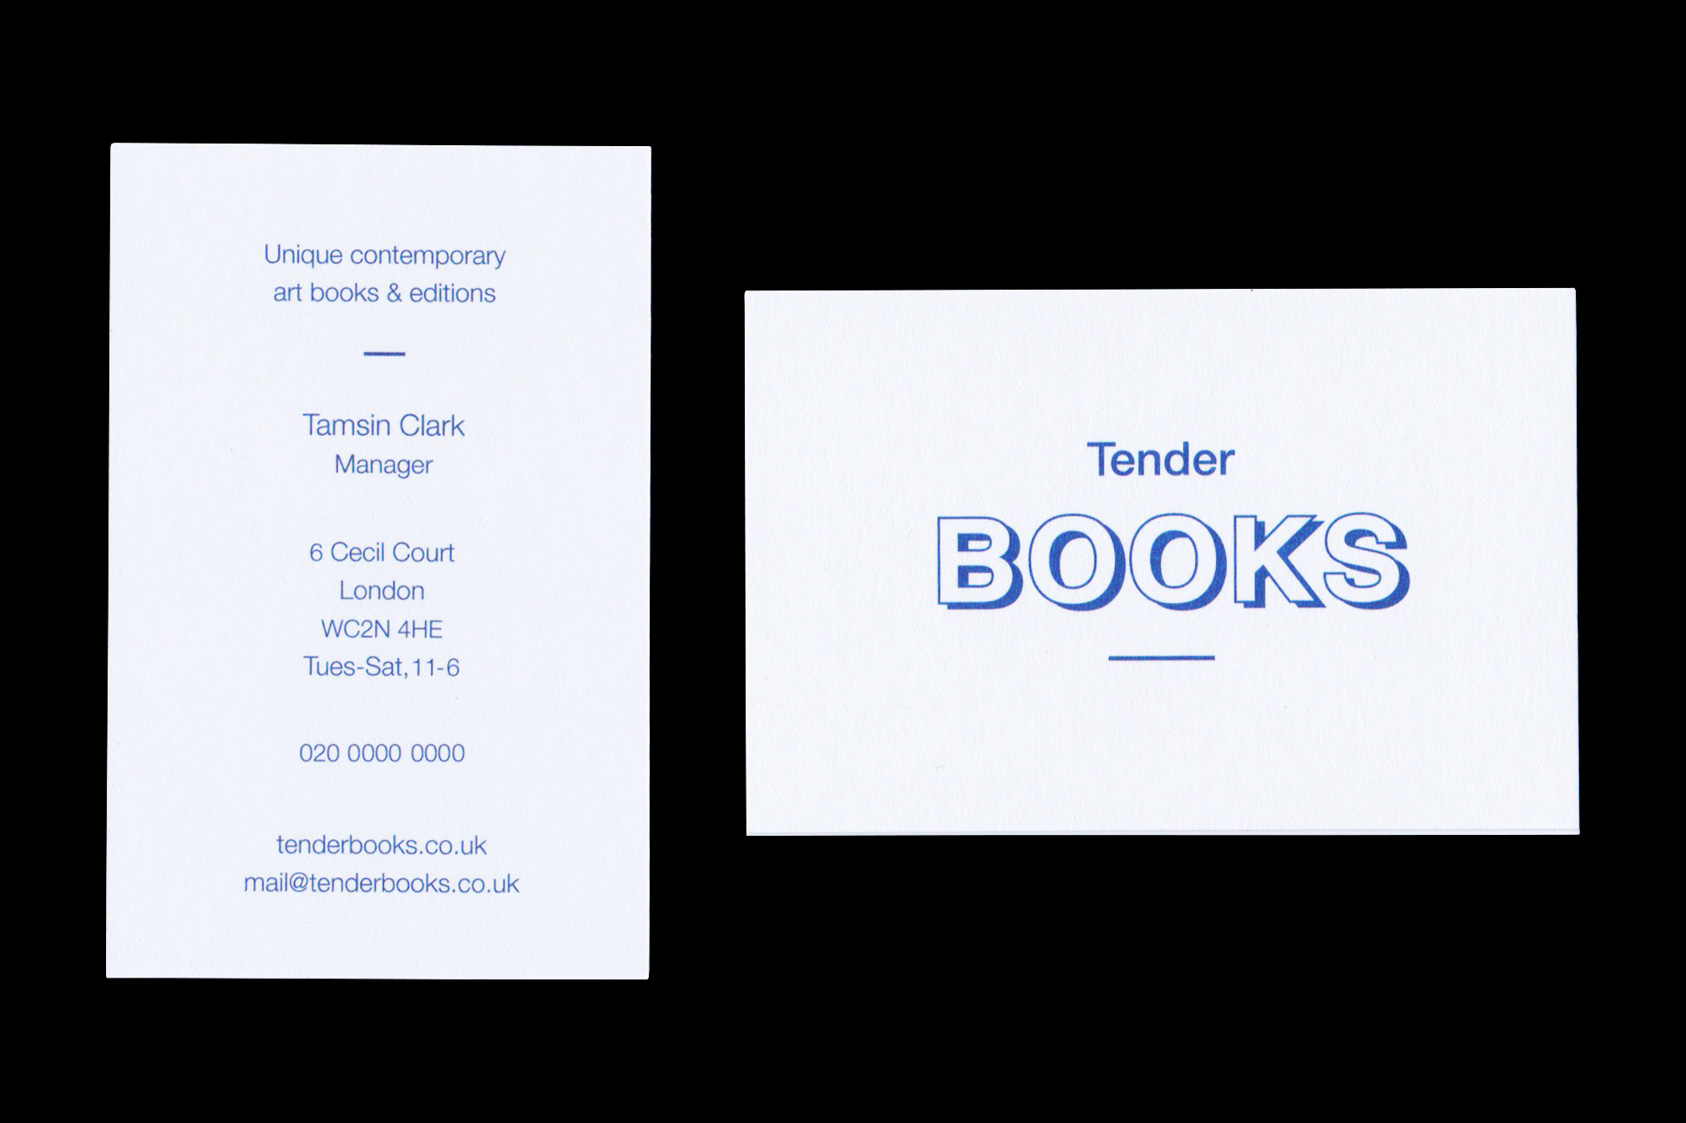 tenderbooks  by the agency for emerging ideas